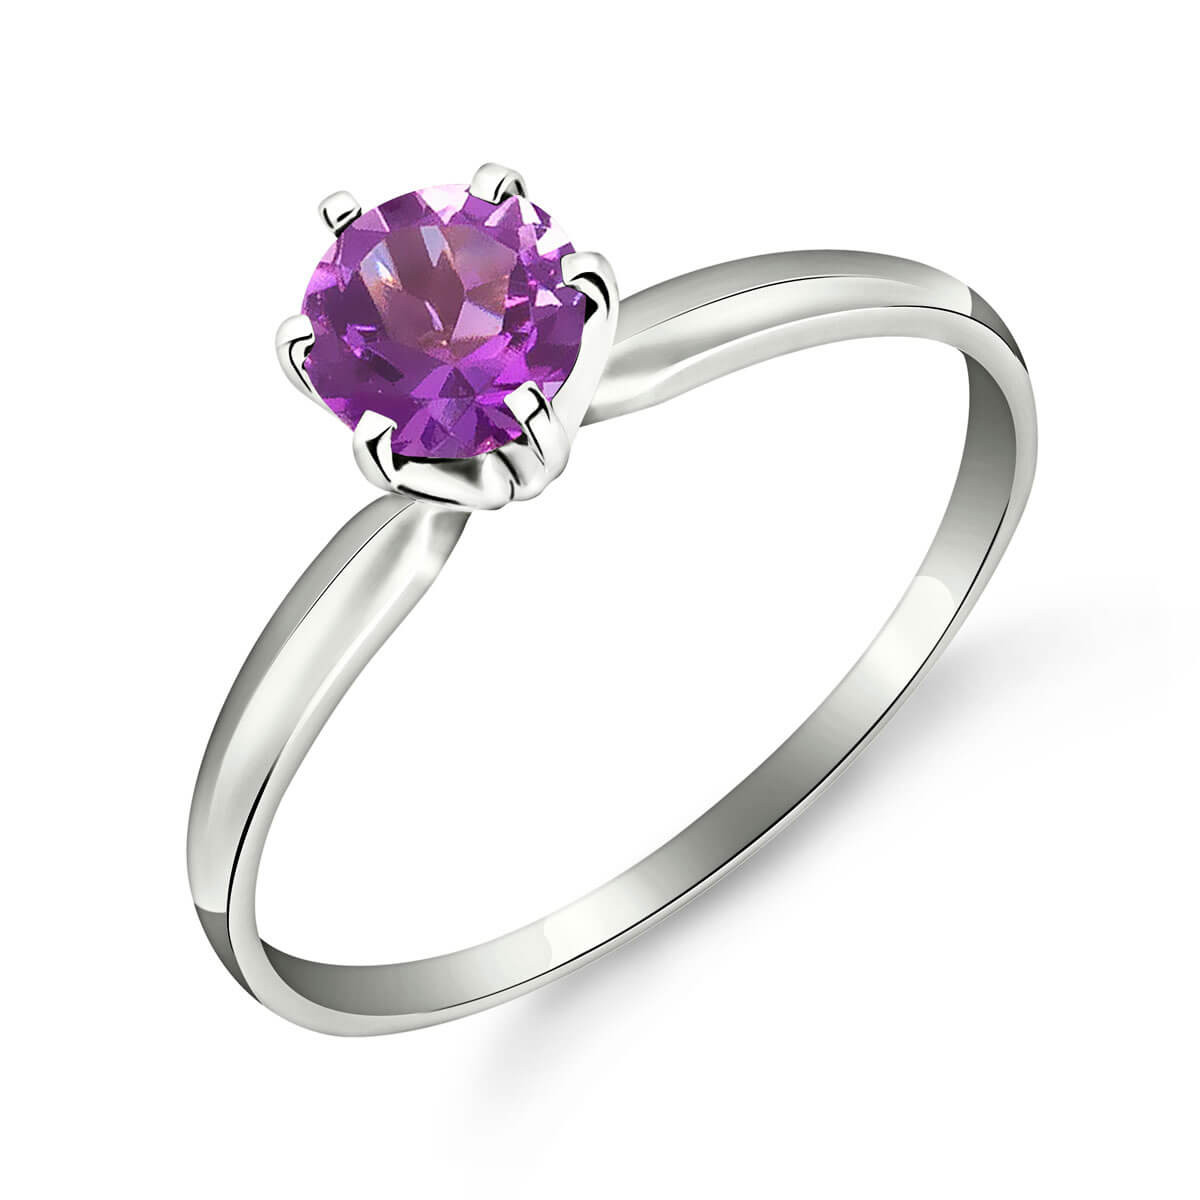 Amethyst Crown Solitaire Ring 0.65 ct in Sterling Silver